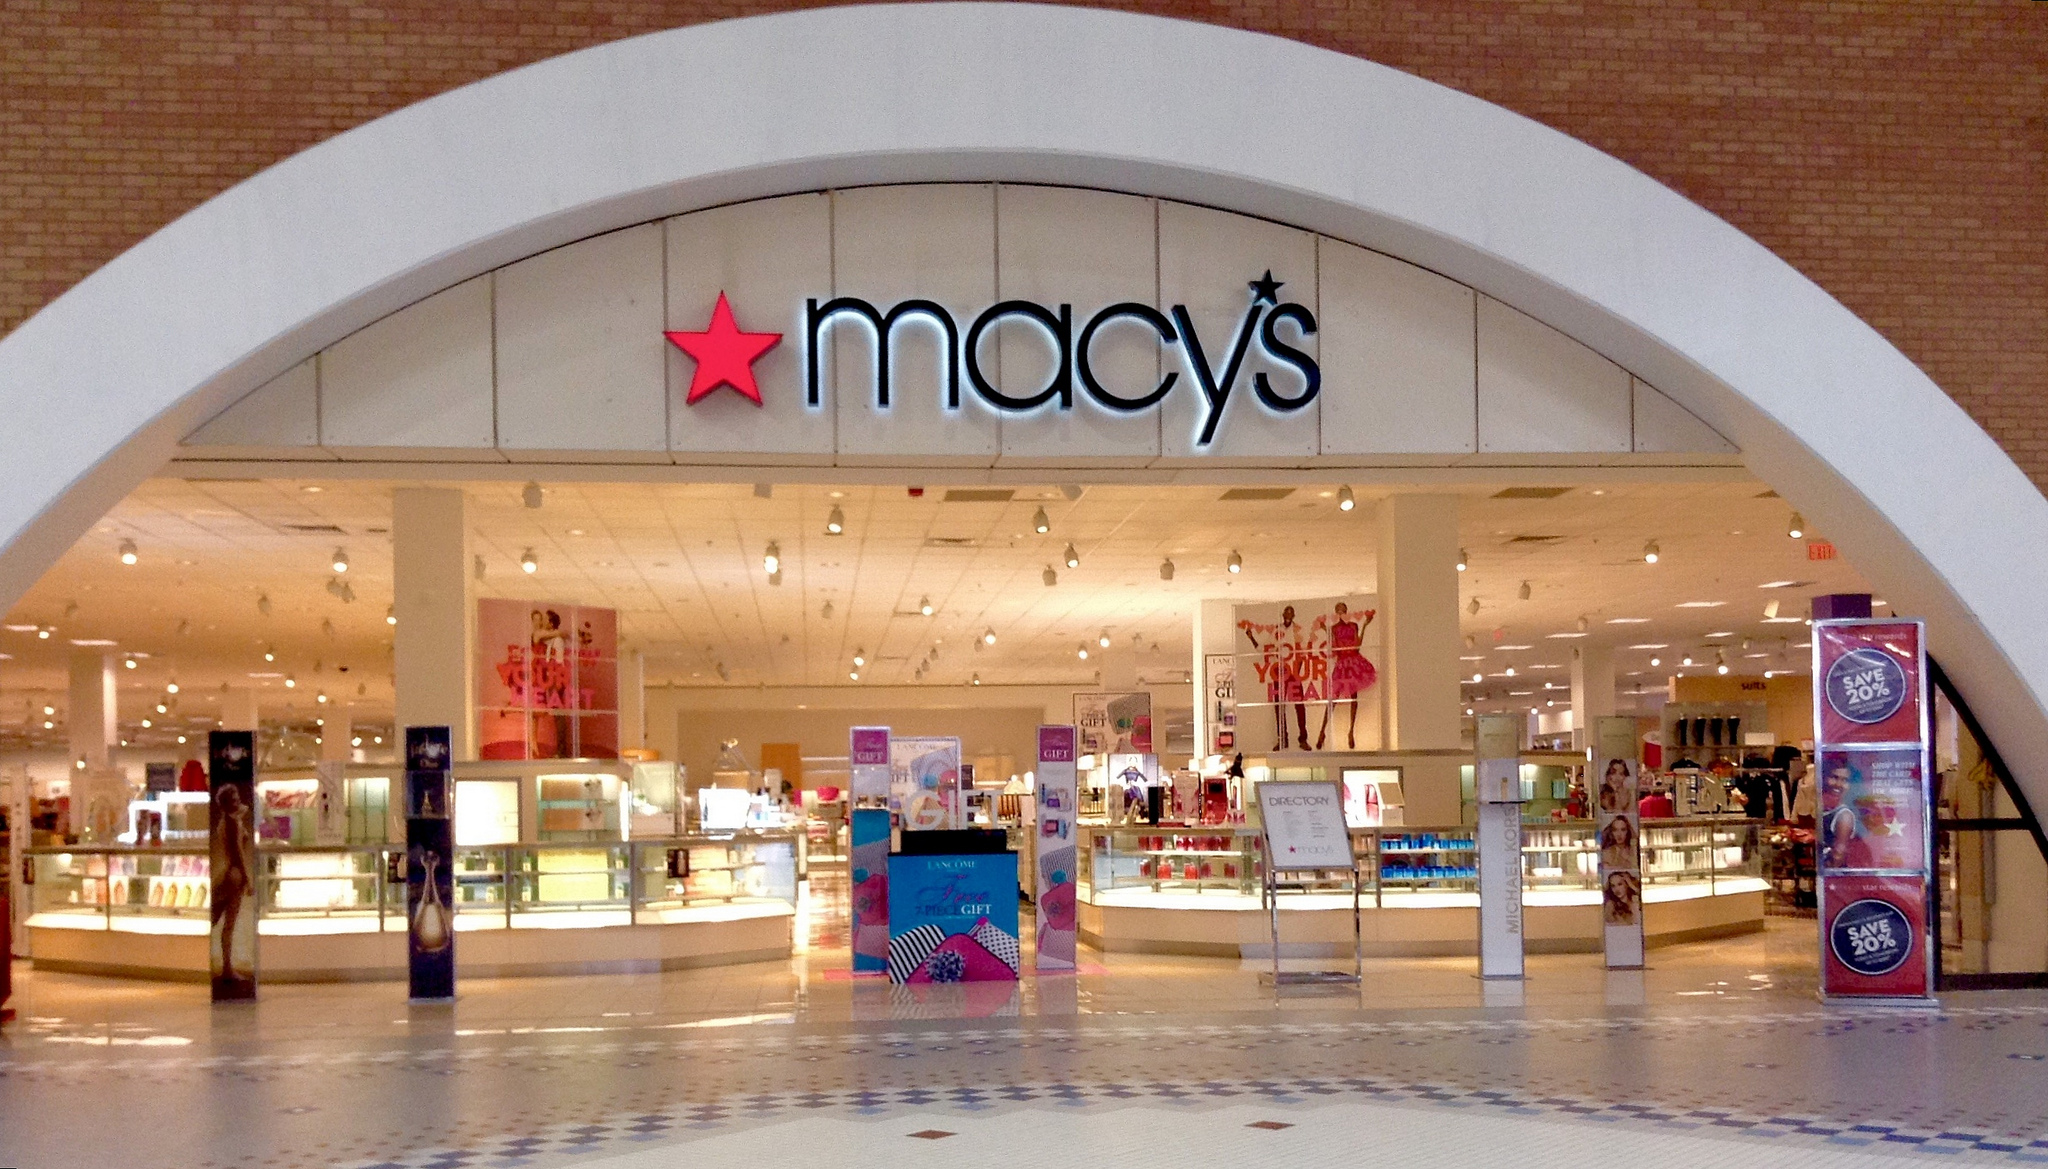 Macy's Announces Store Closures, Expect to See More - Saving Advice ...